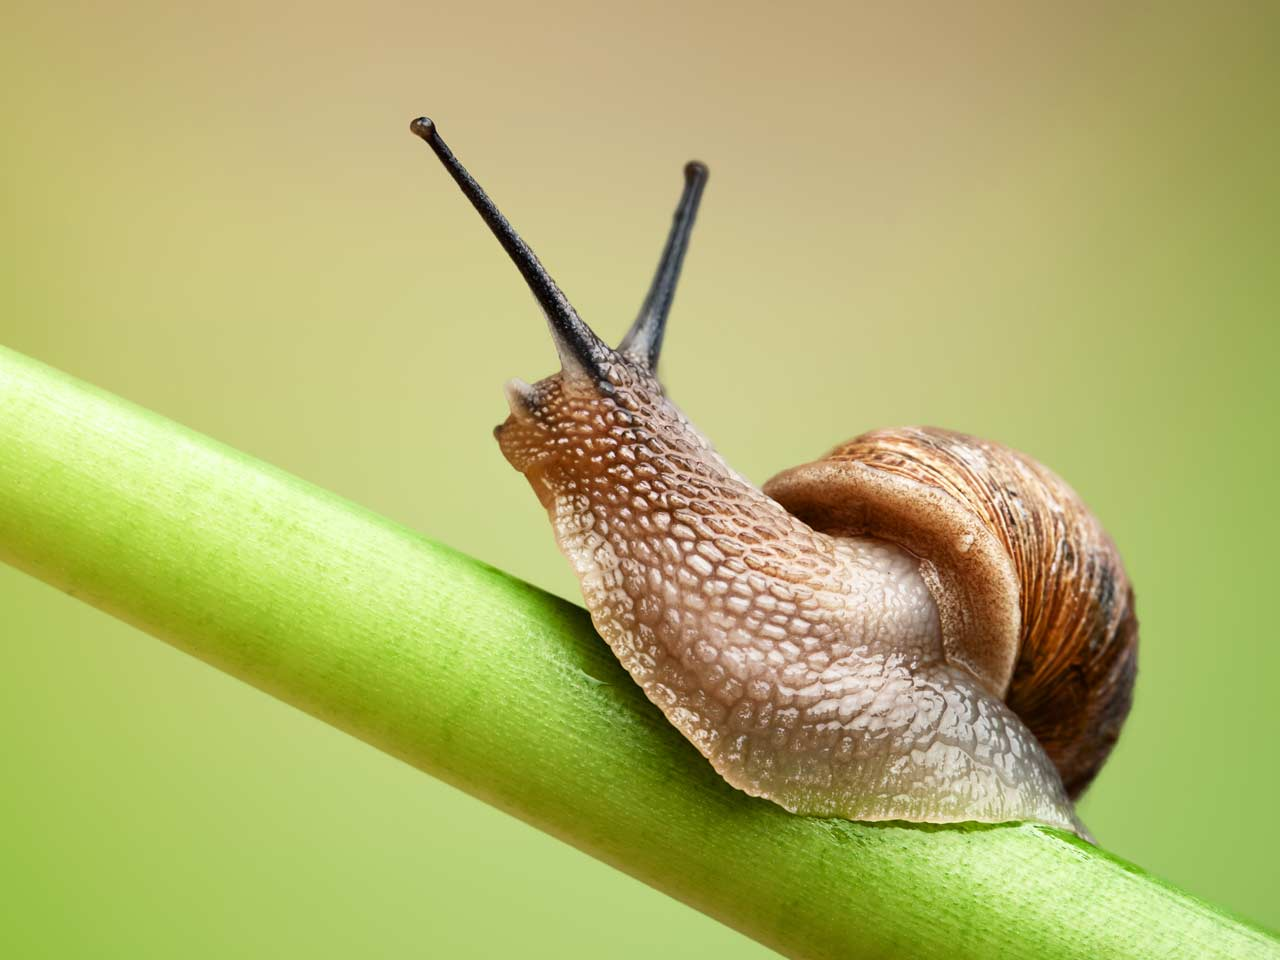 How many teeth does a snail have